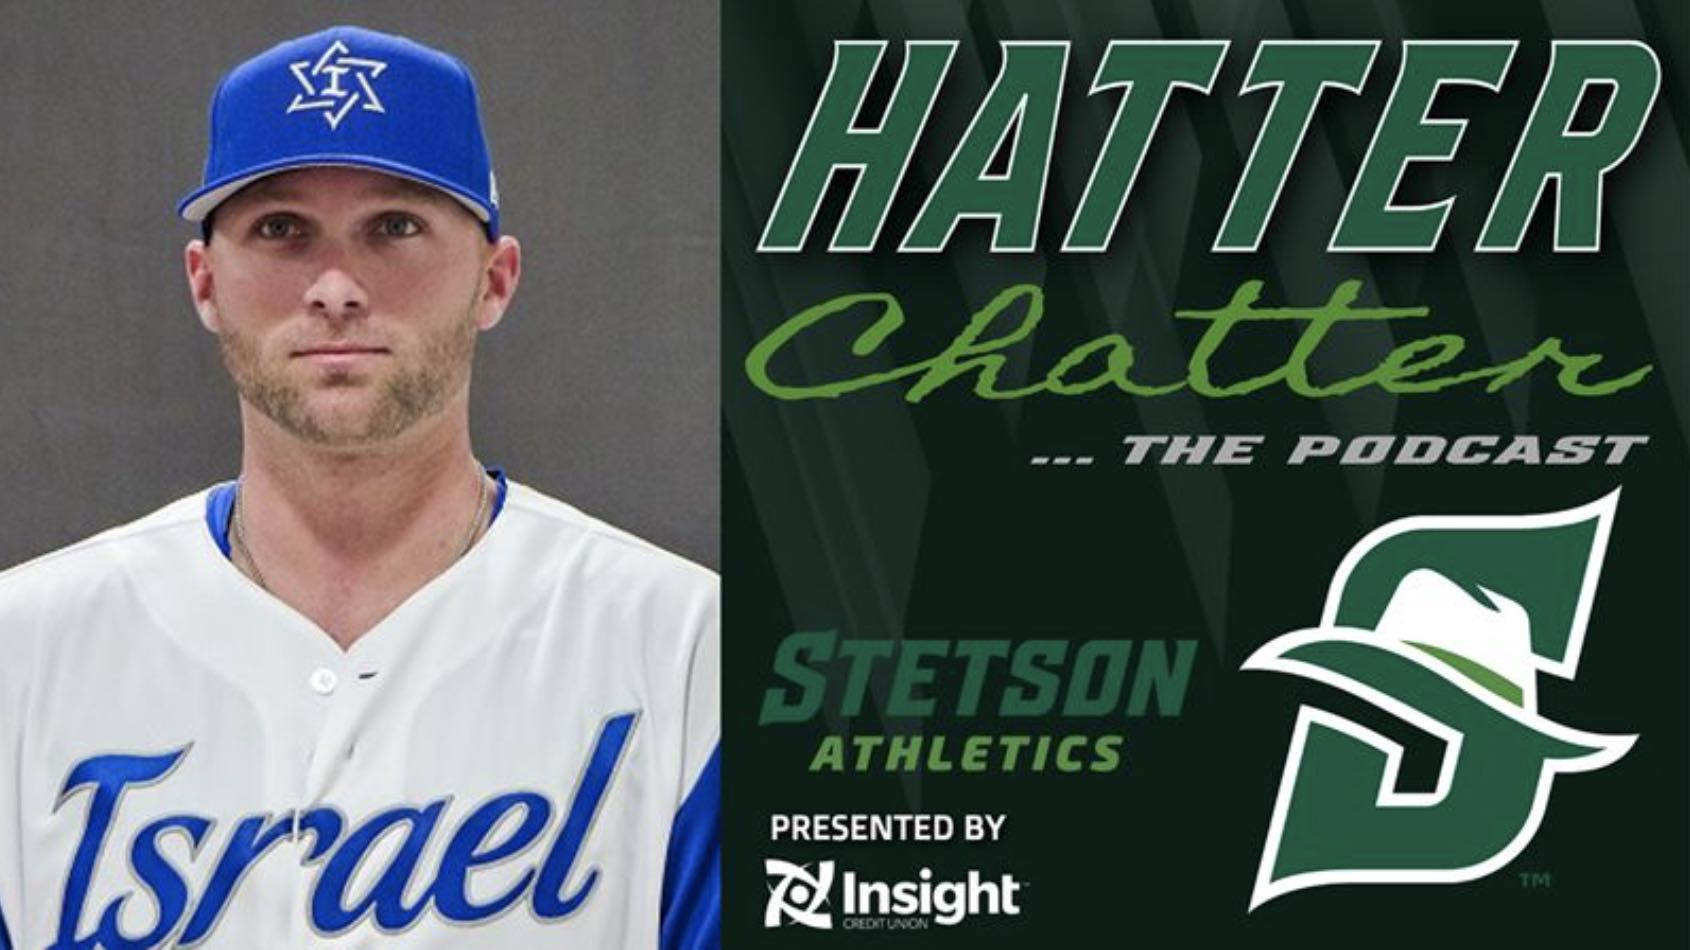 Graphic with Nick Rickles' mugshot and the Hatter Chatter podcast logo.